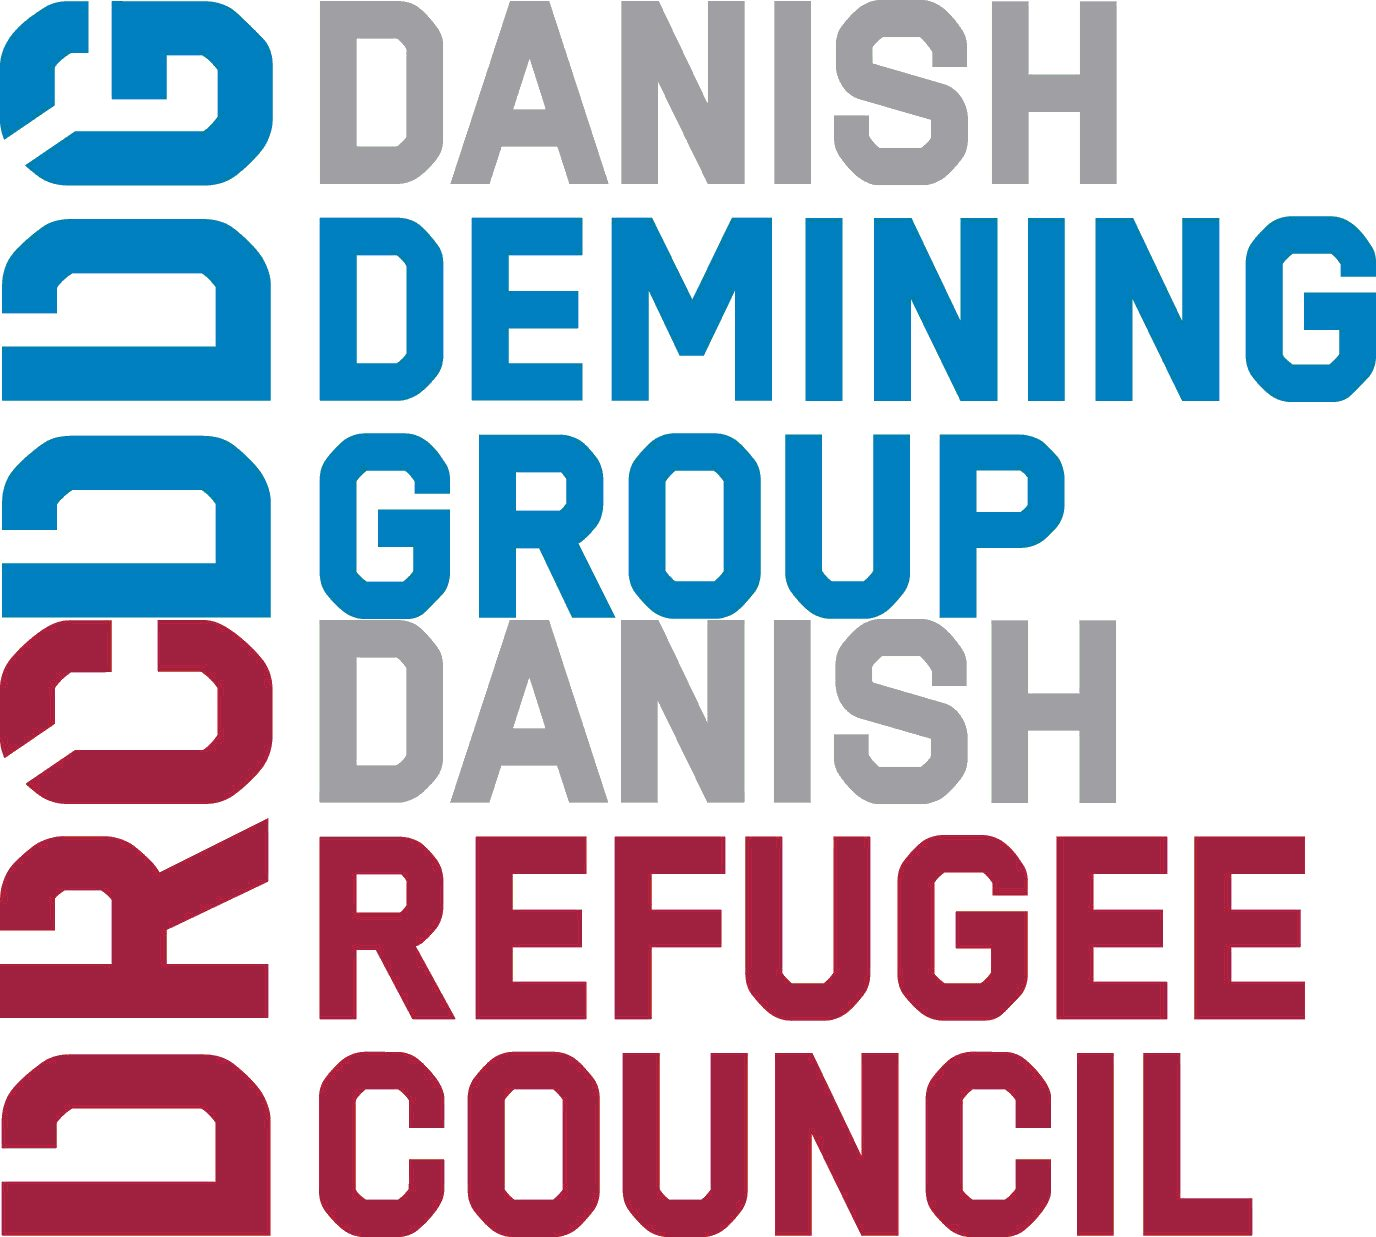 Danish Refugee Council - DRC Programme Colombia